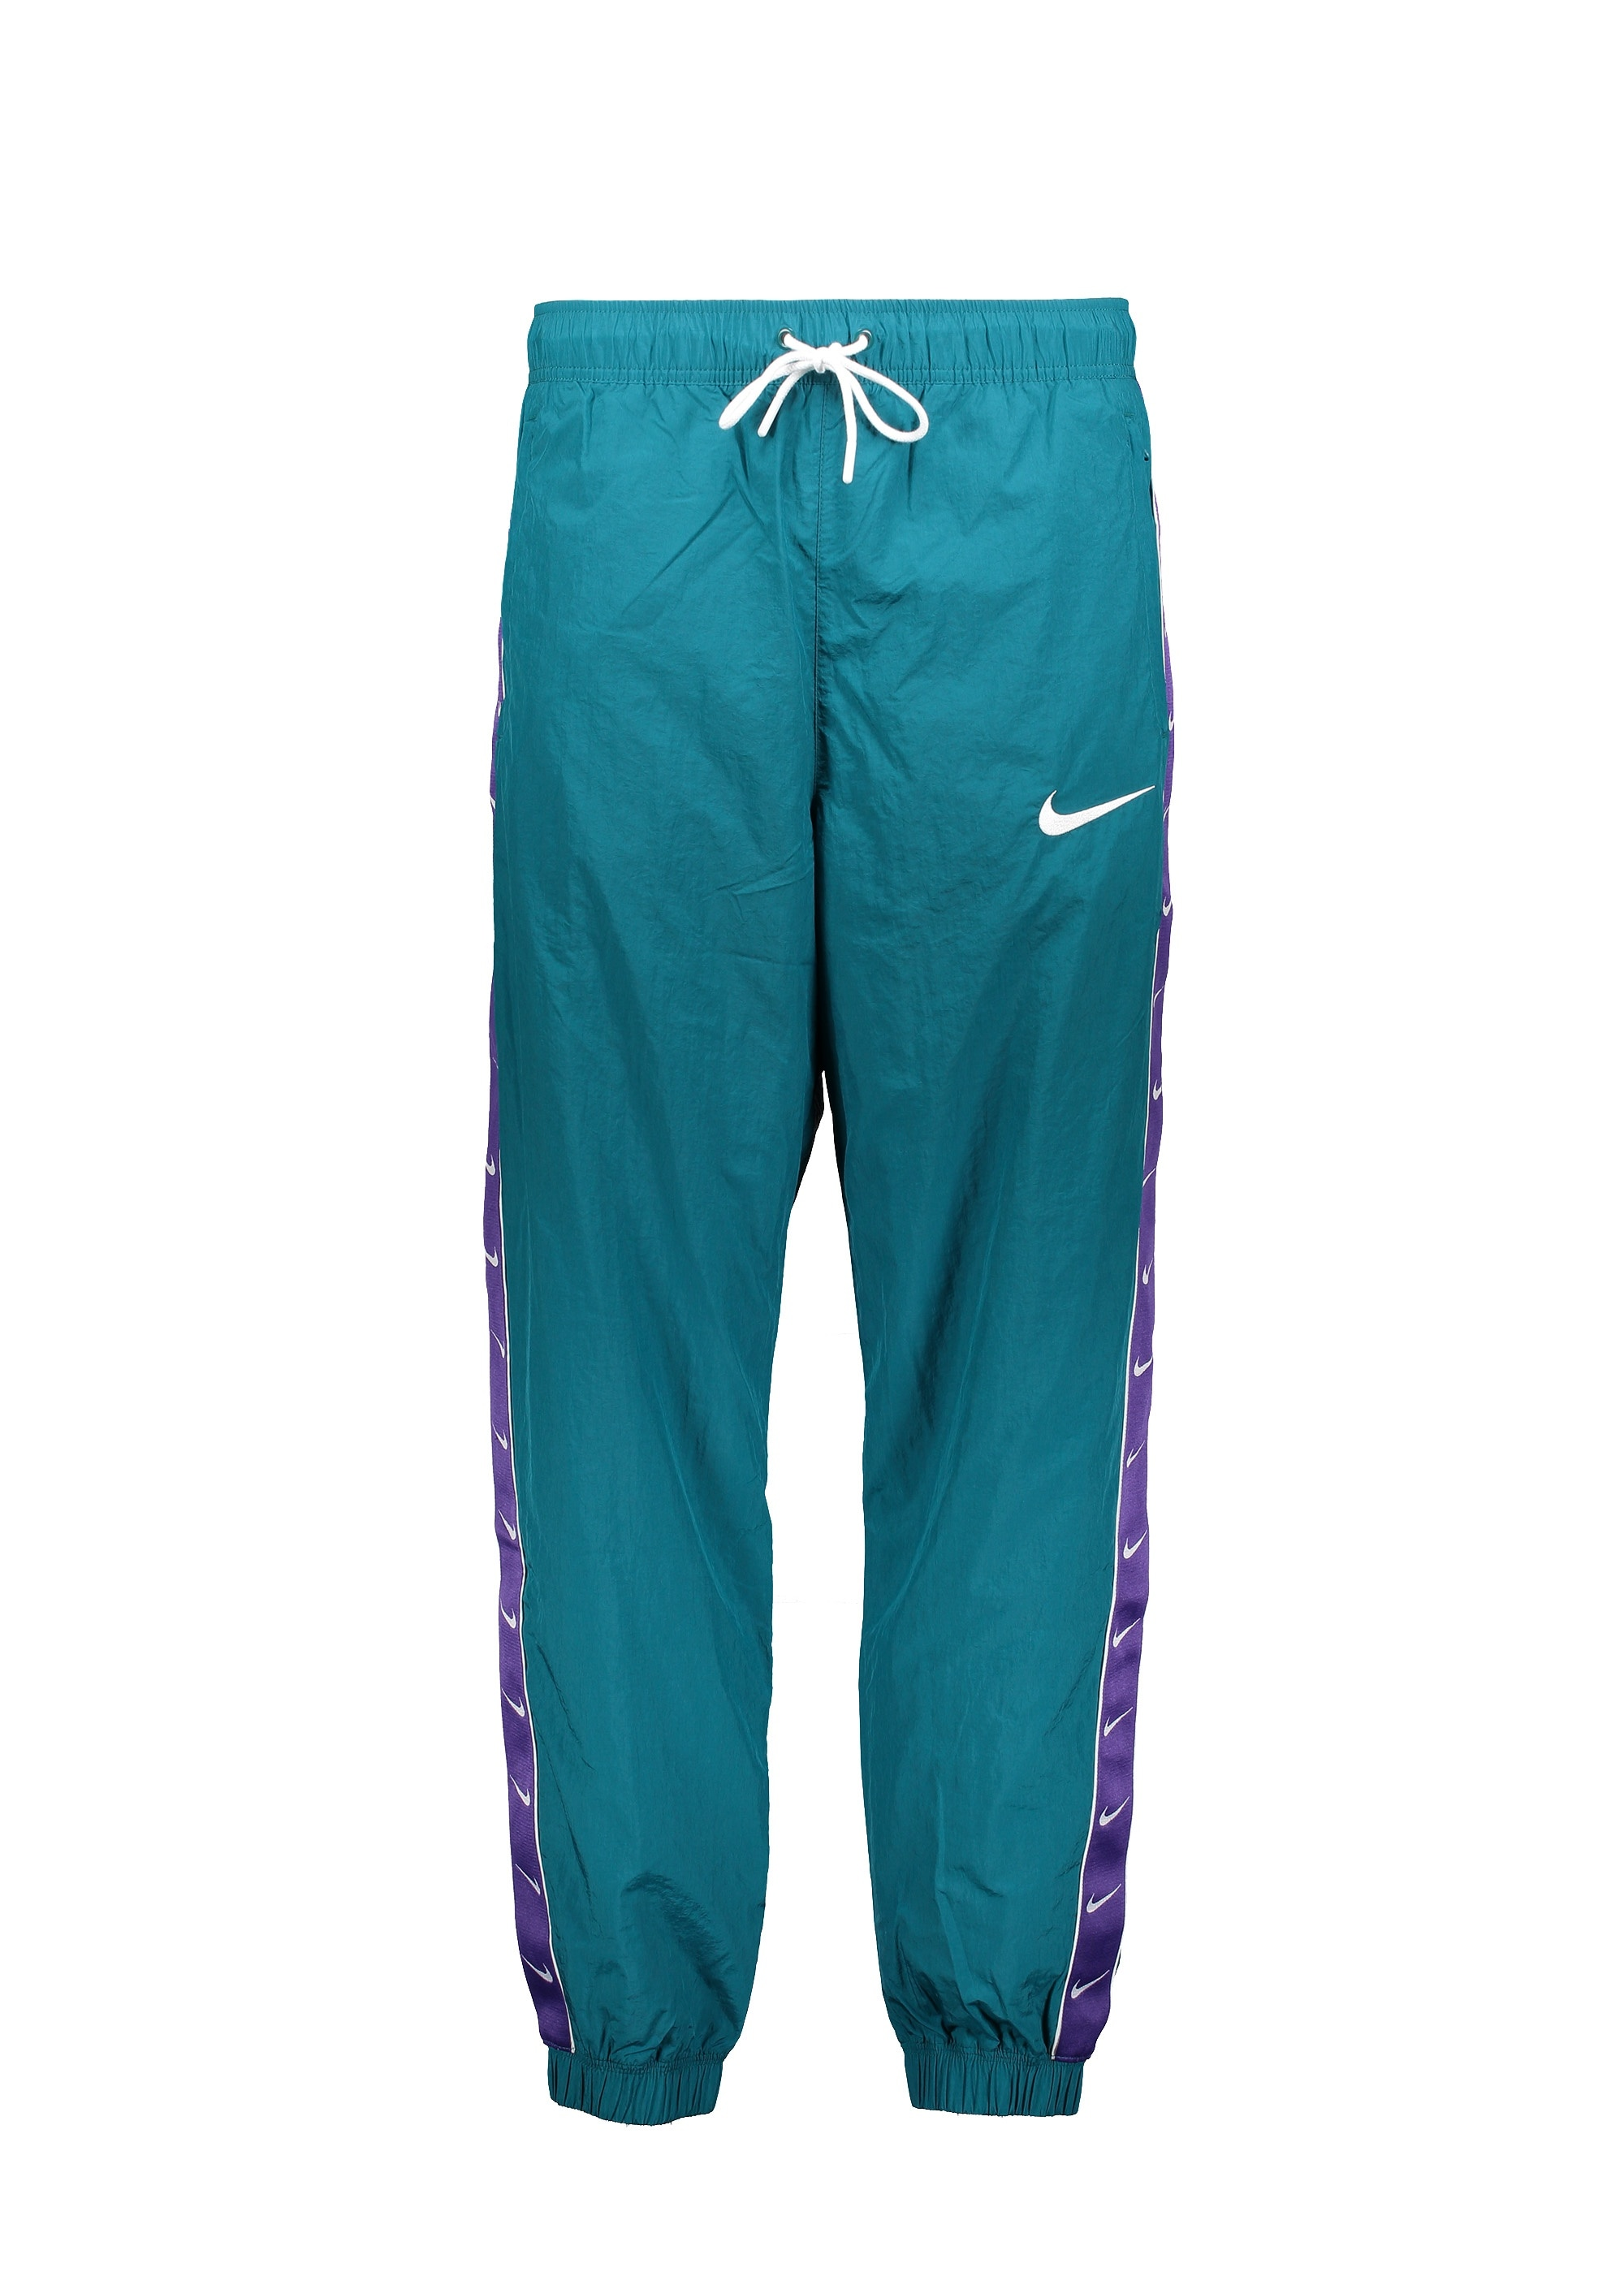 851bc1ba1 Nike Apparel Swoosh Pant - Geode Teal - Track Pants from Triads UK